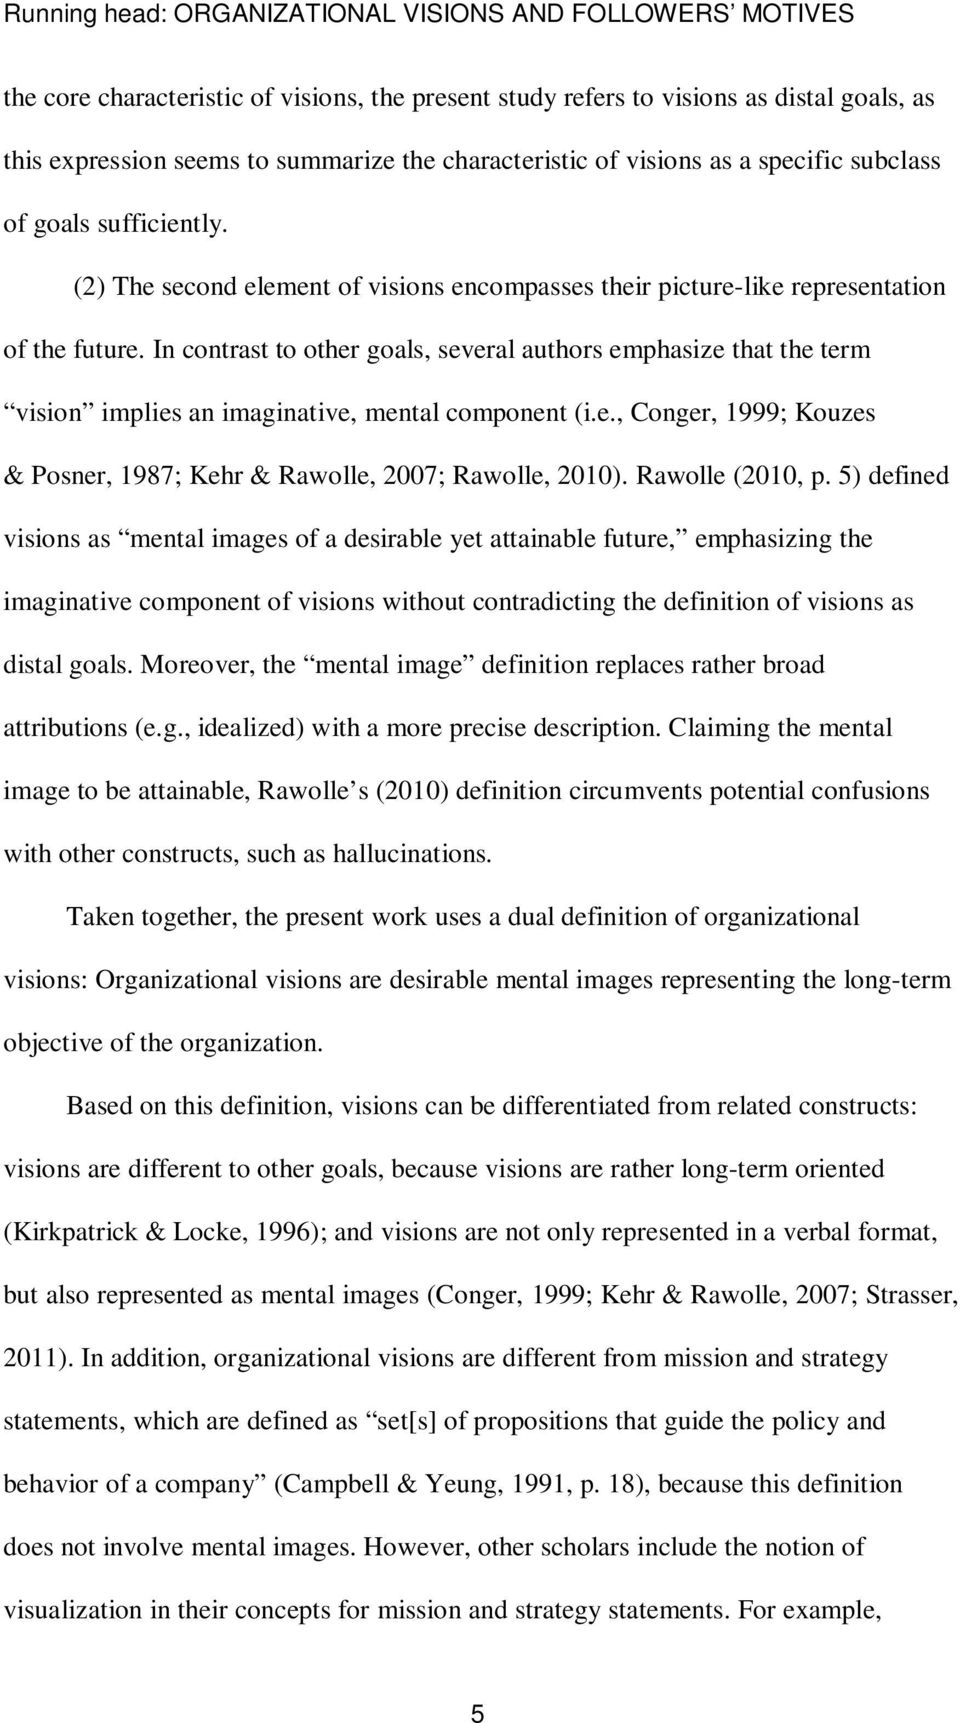 In contrast to other goals, several authors emphasize that the term vision implies an imaginative, mental component (i.e., Conger, 1999; Kouzes & Posner, 1987; Kehr & Rawolle, 2007; Rawolle, 2010).